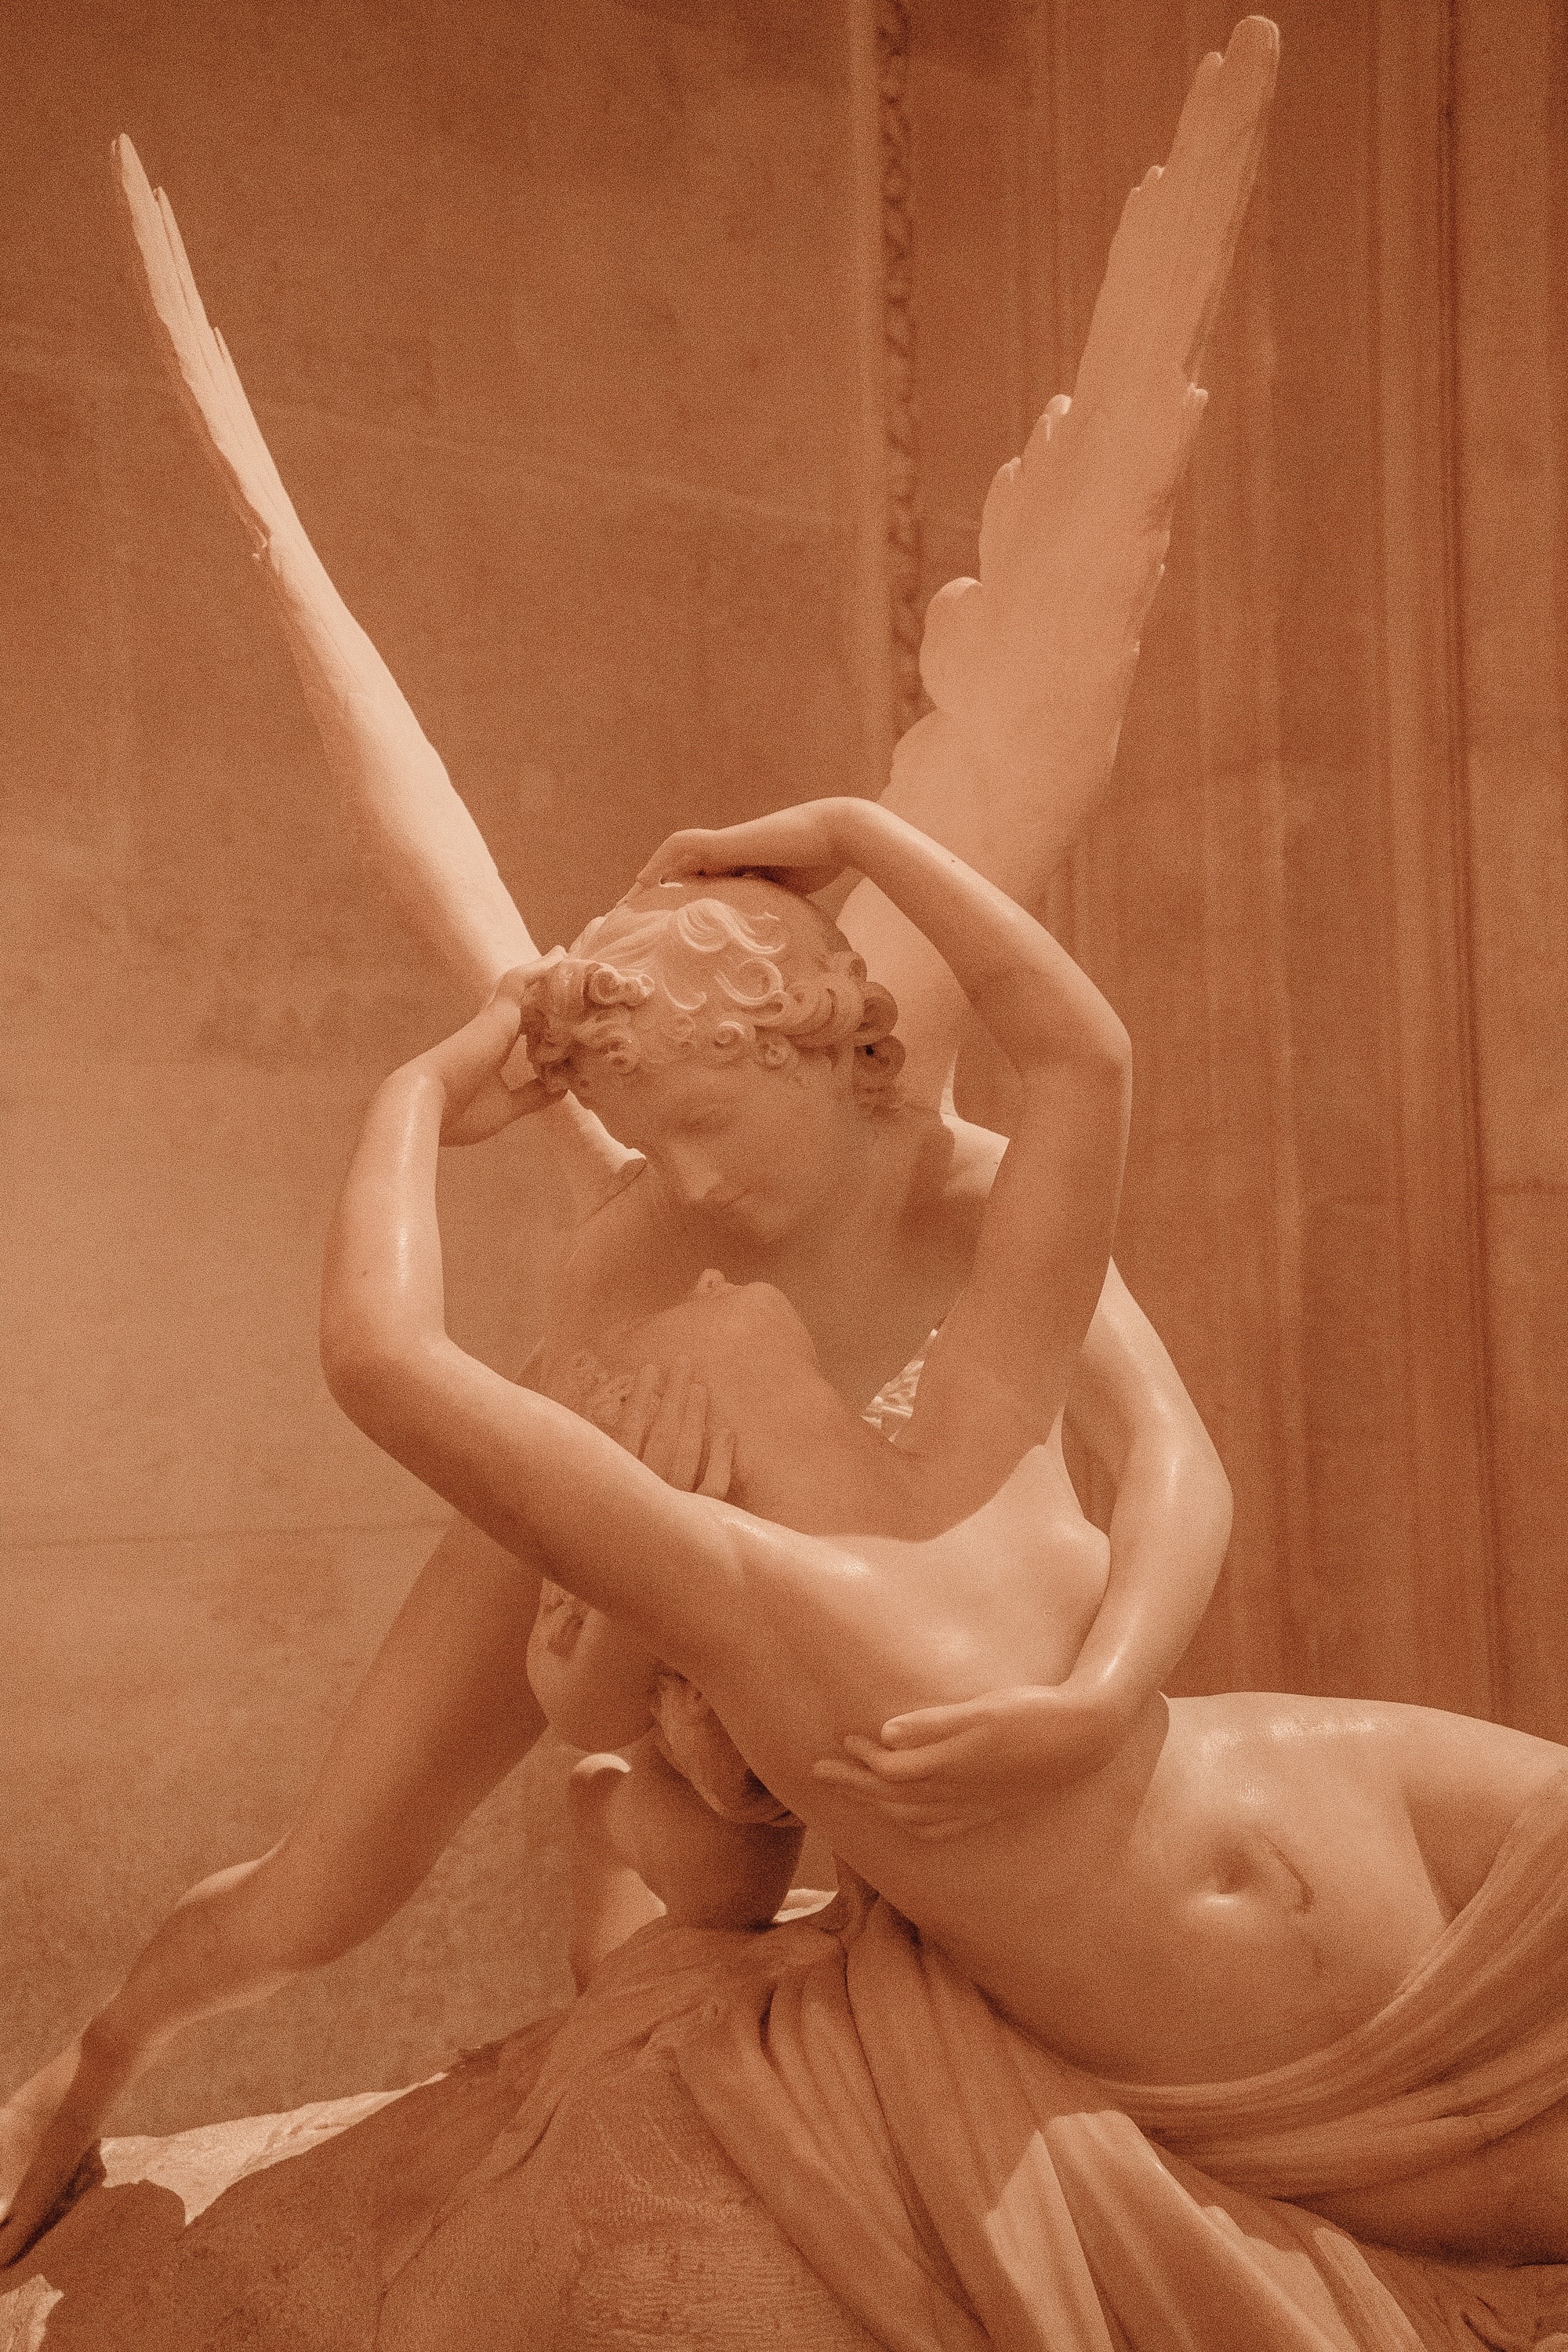 Cupid and Psyche sculpture at the Louvre